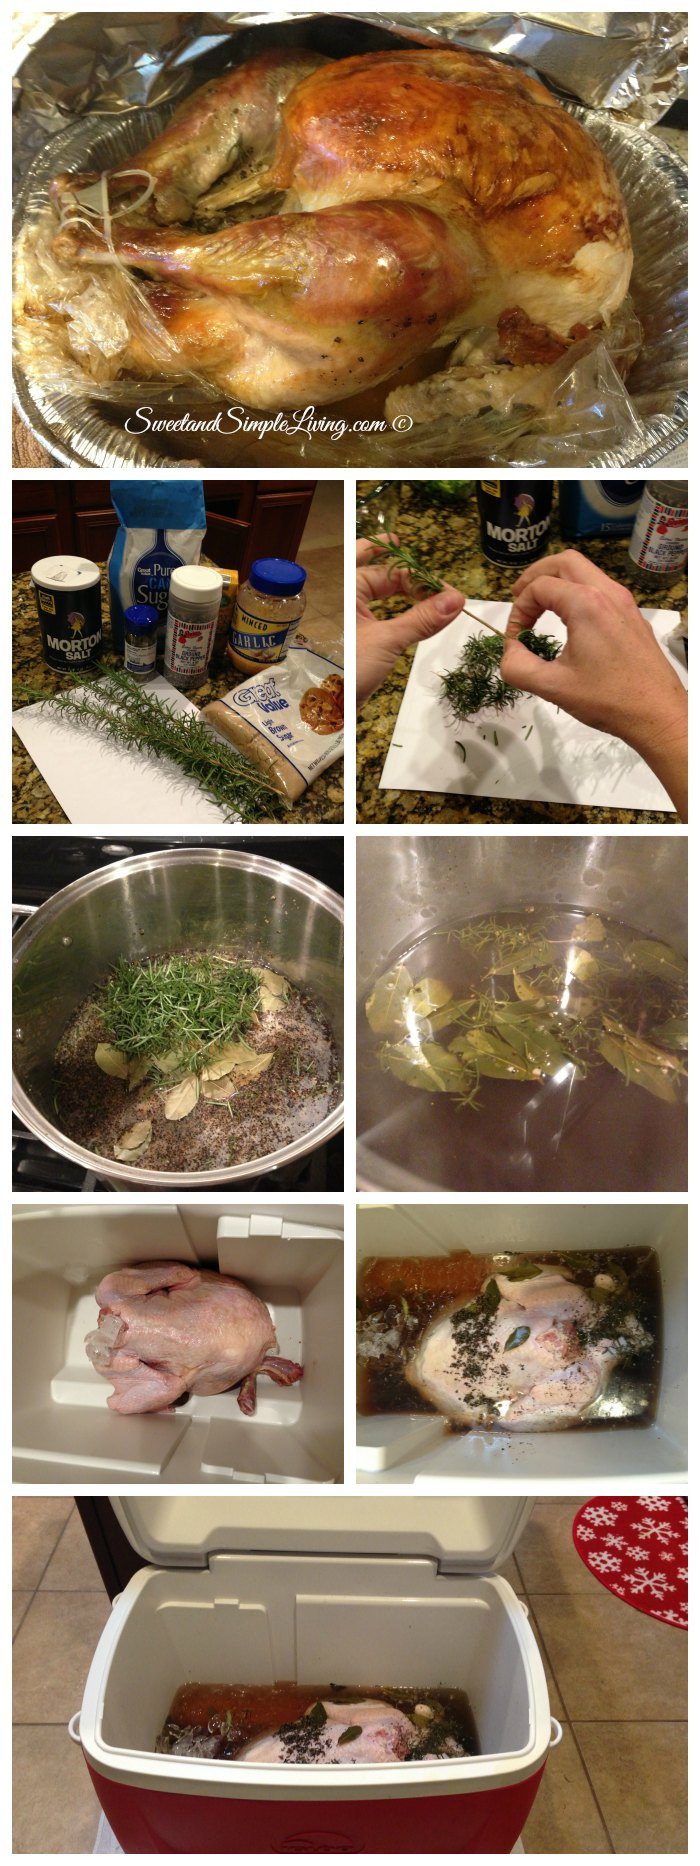 Best Thanksgiving Turkey Brine  Best Turkey Brine Recipe Sweet and Simple Living